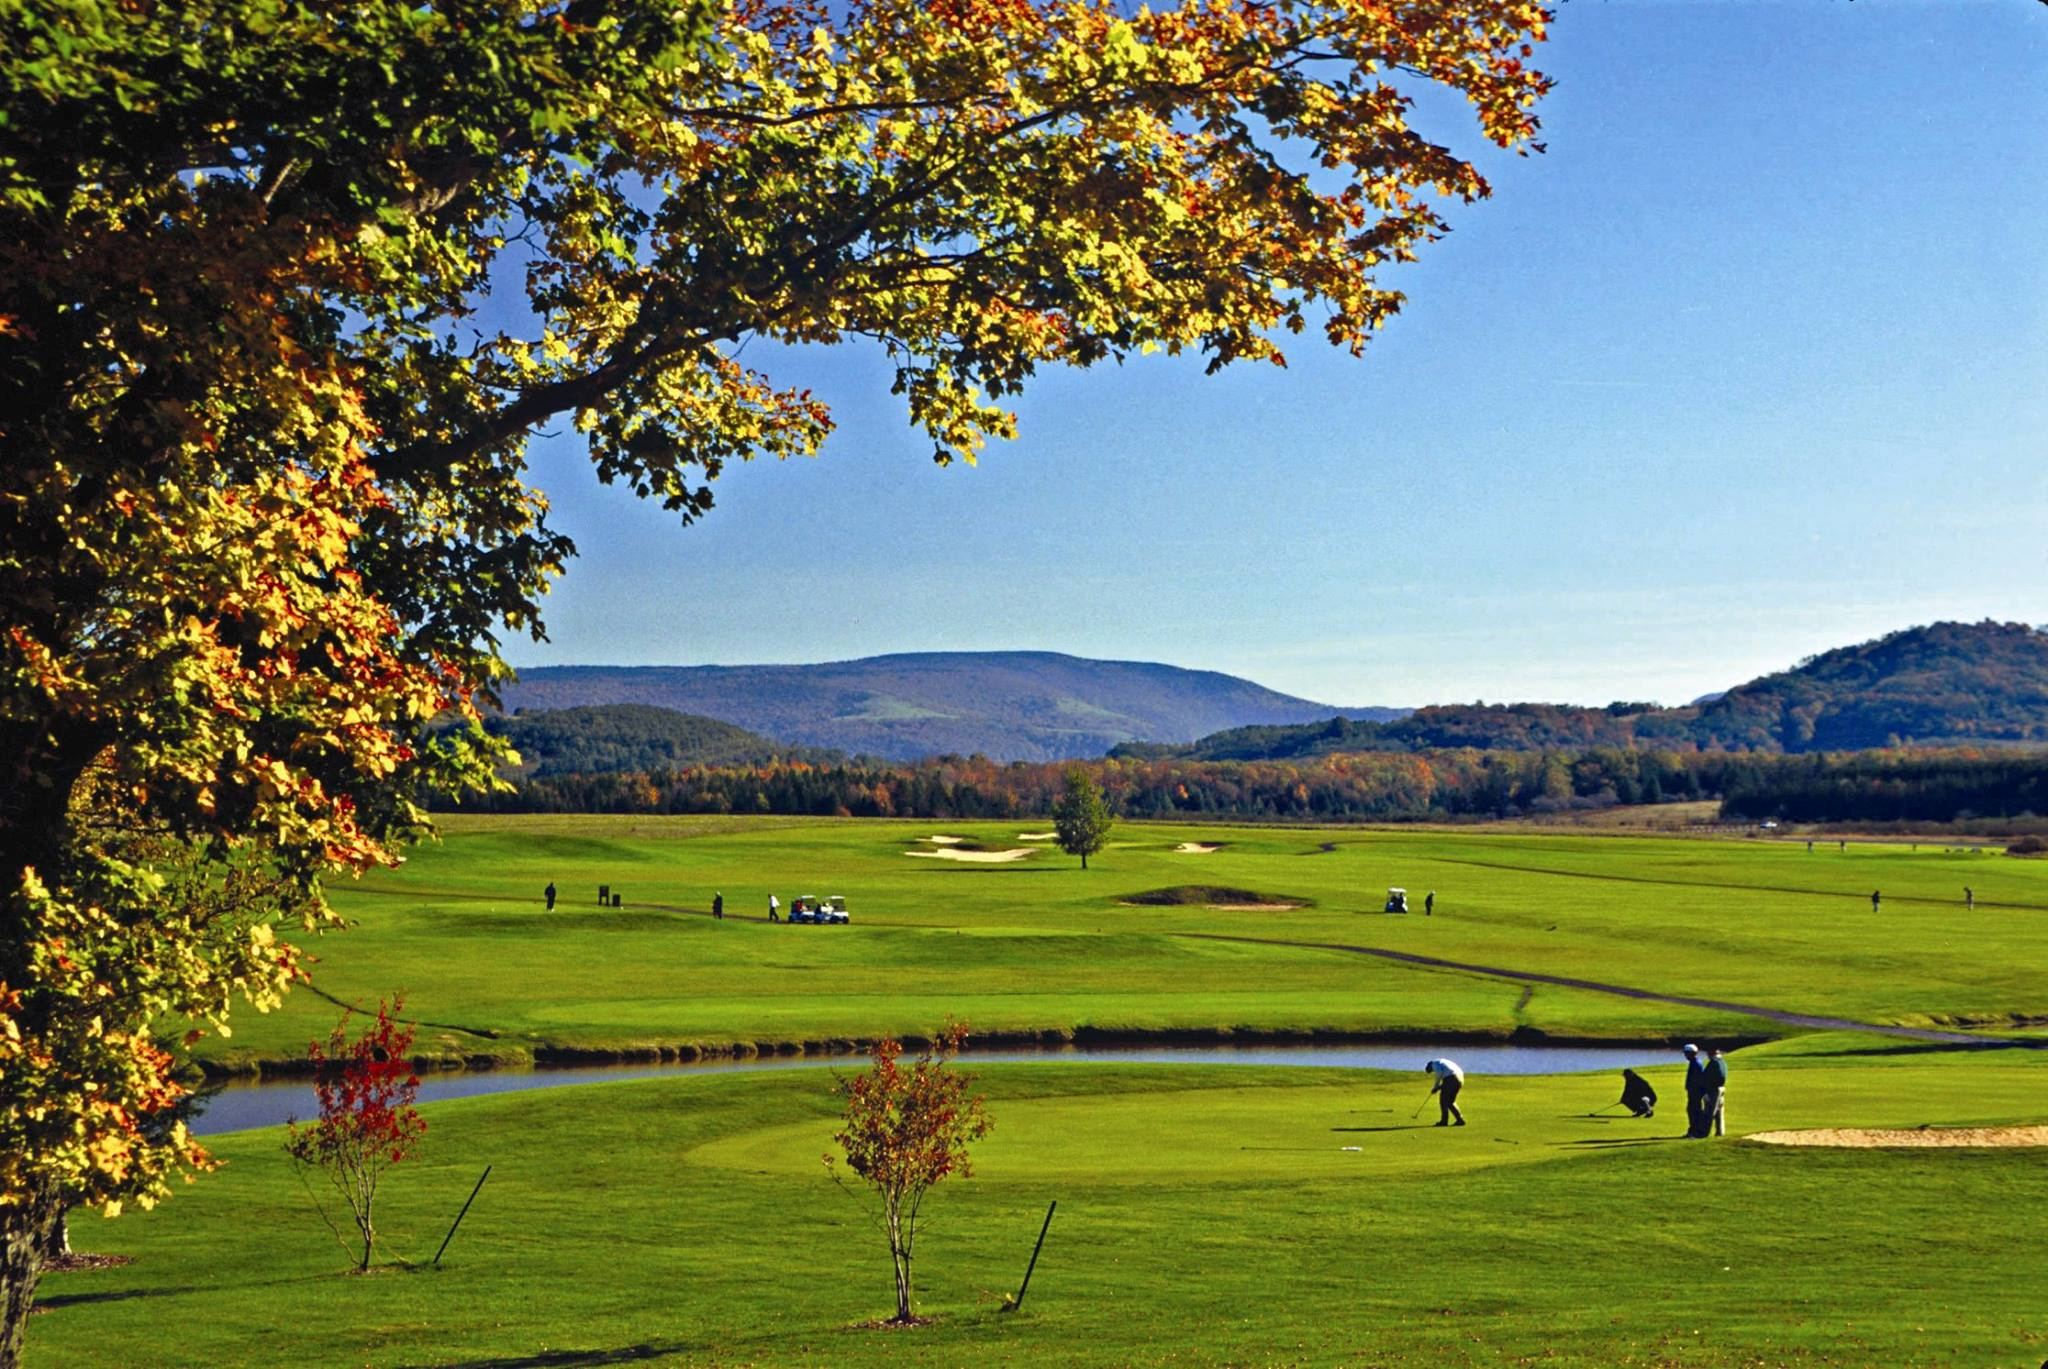 wvstateparks.com - Canaan Valley Resort and Conference